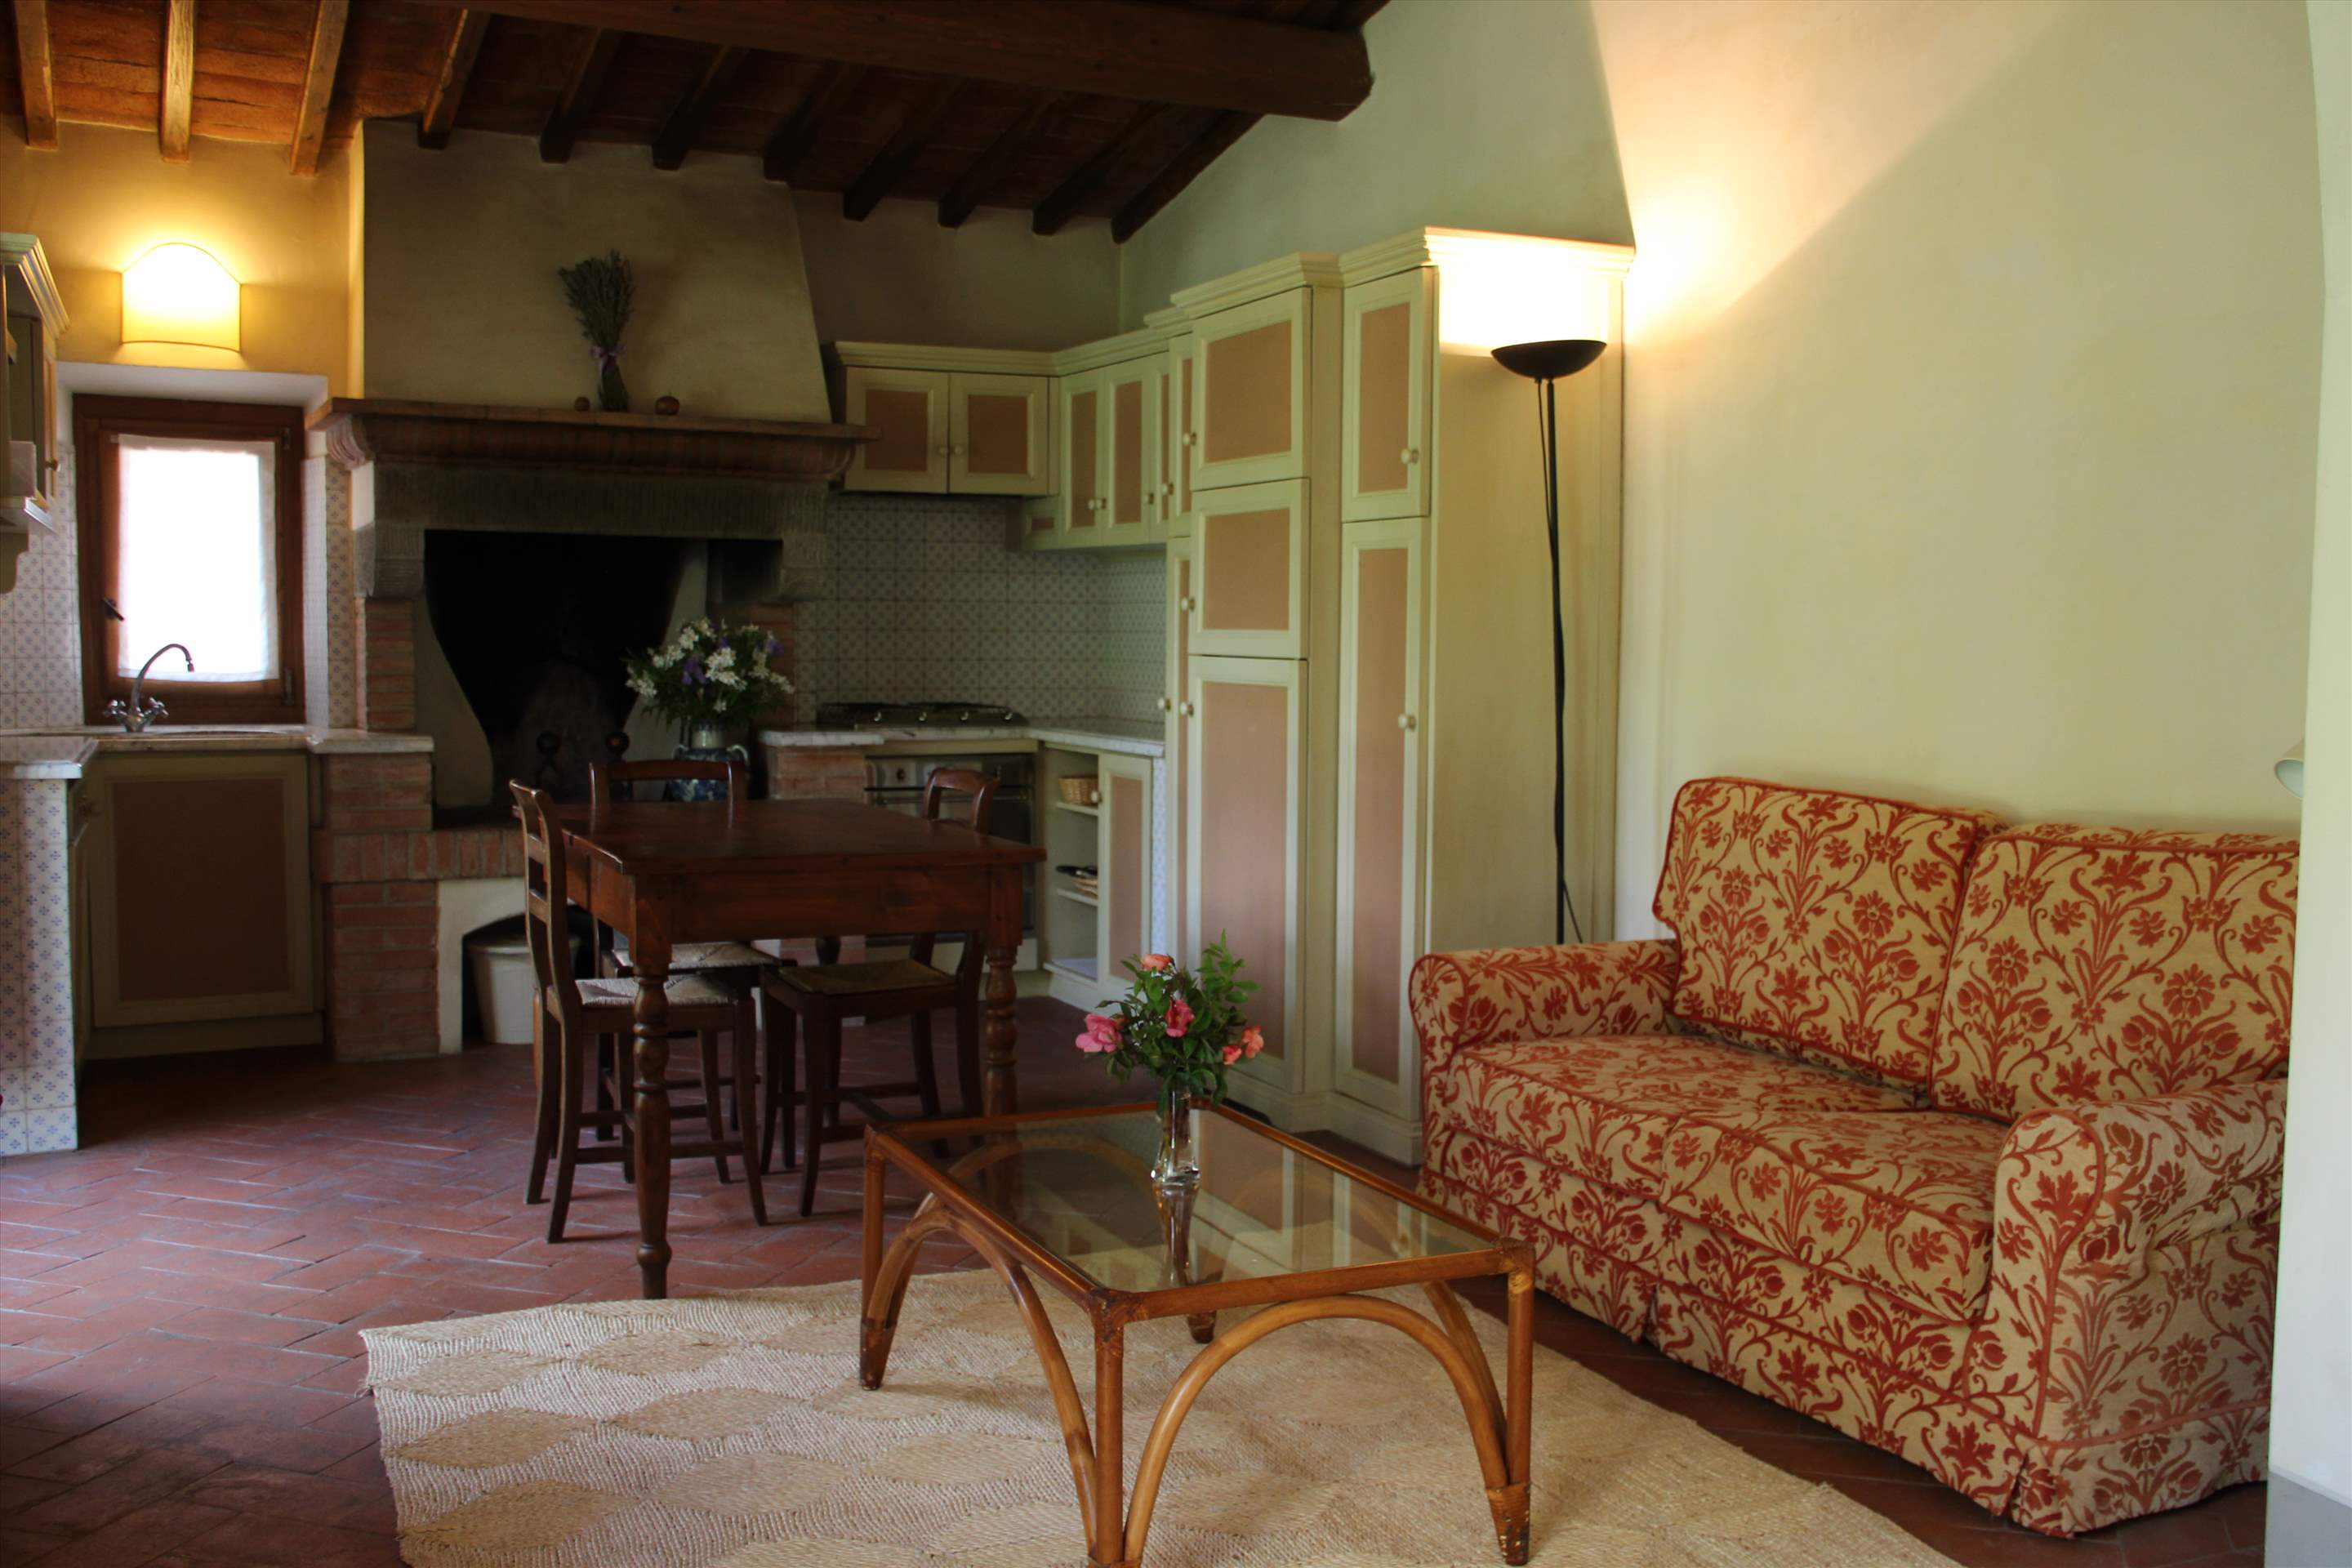 Apartment Limonaia, 1 bedroom apartment in Chianti & Countryside, Tuscany Photo #3